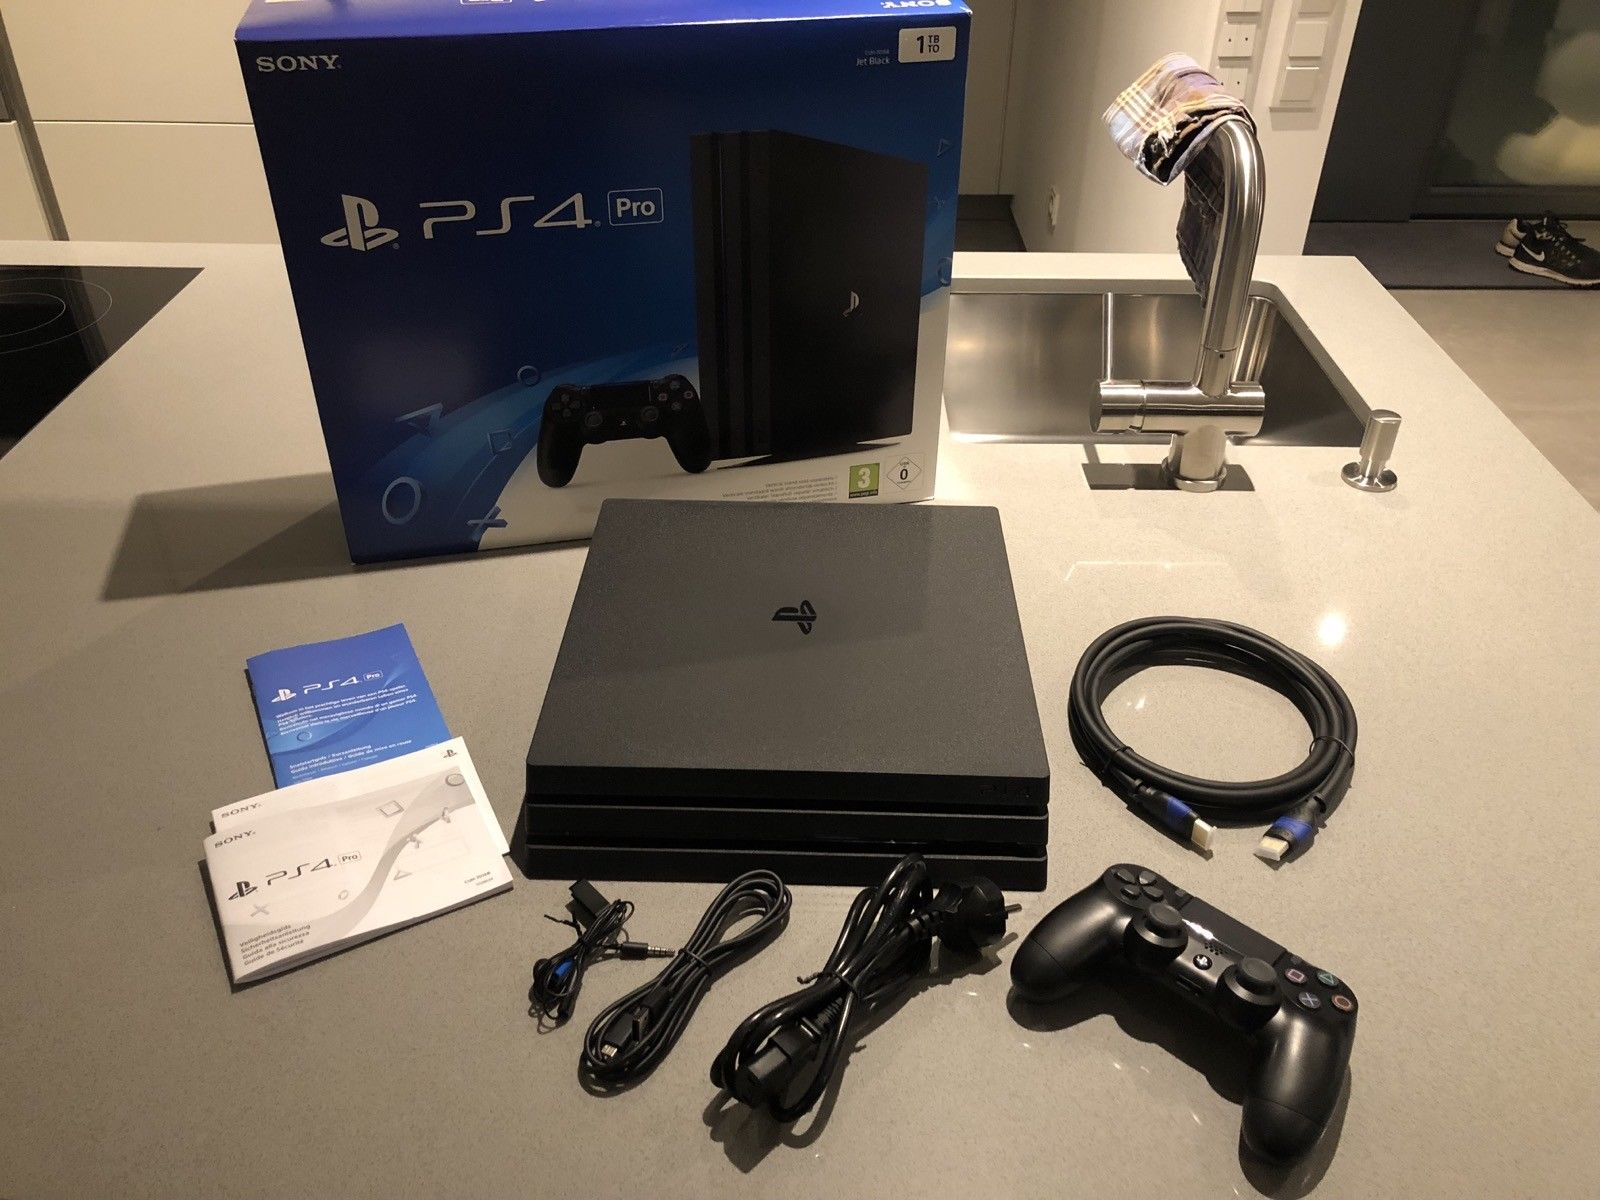 Sony Playstation 4 Pro 1tb Jet Black Console Boxed Classified At